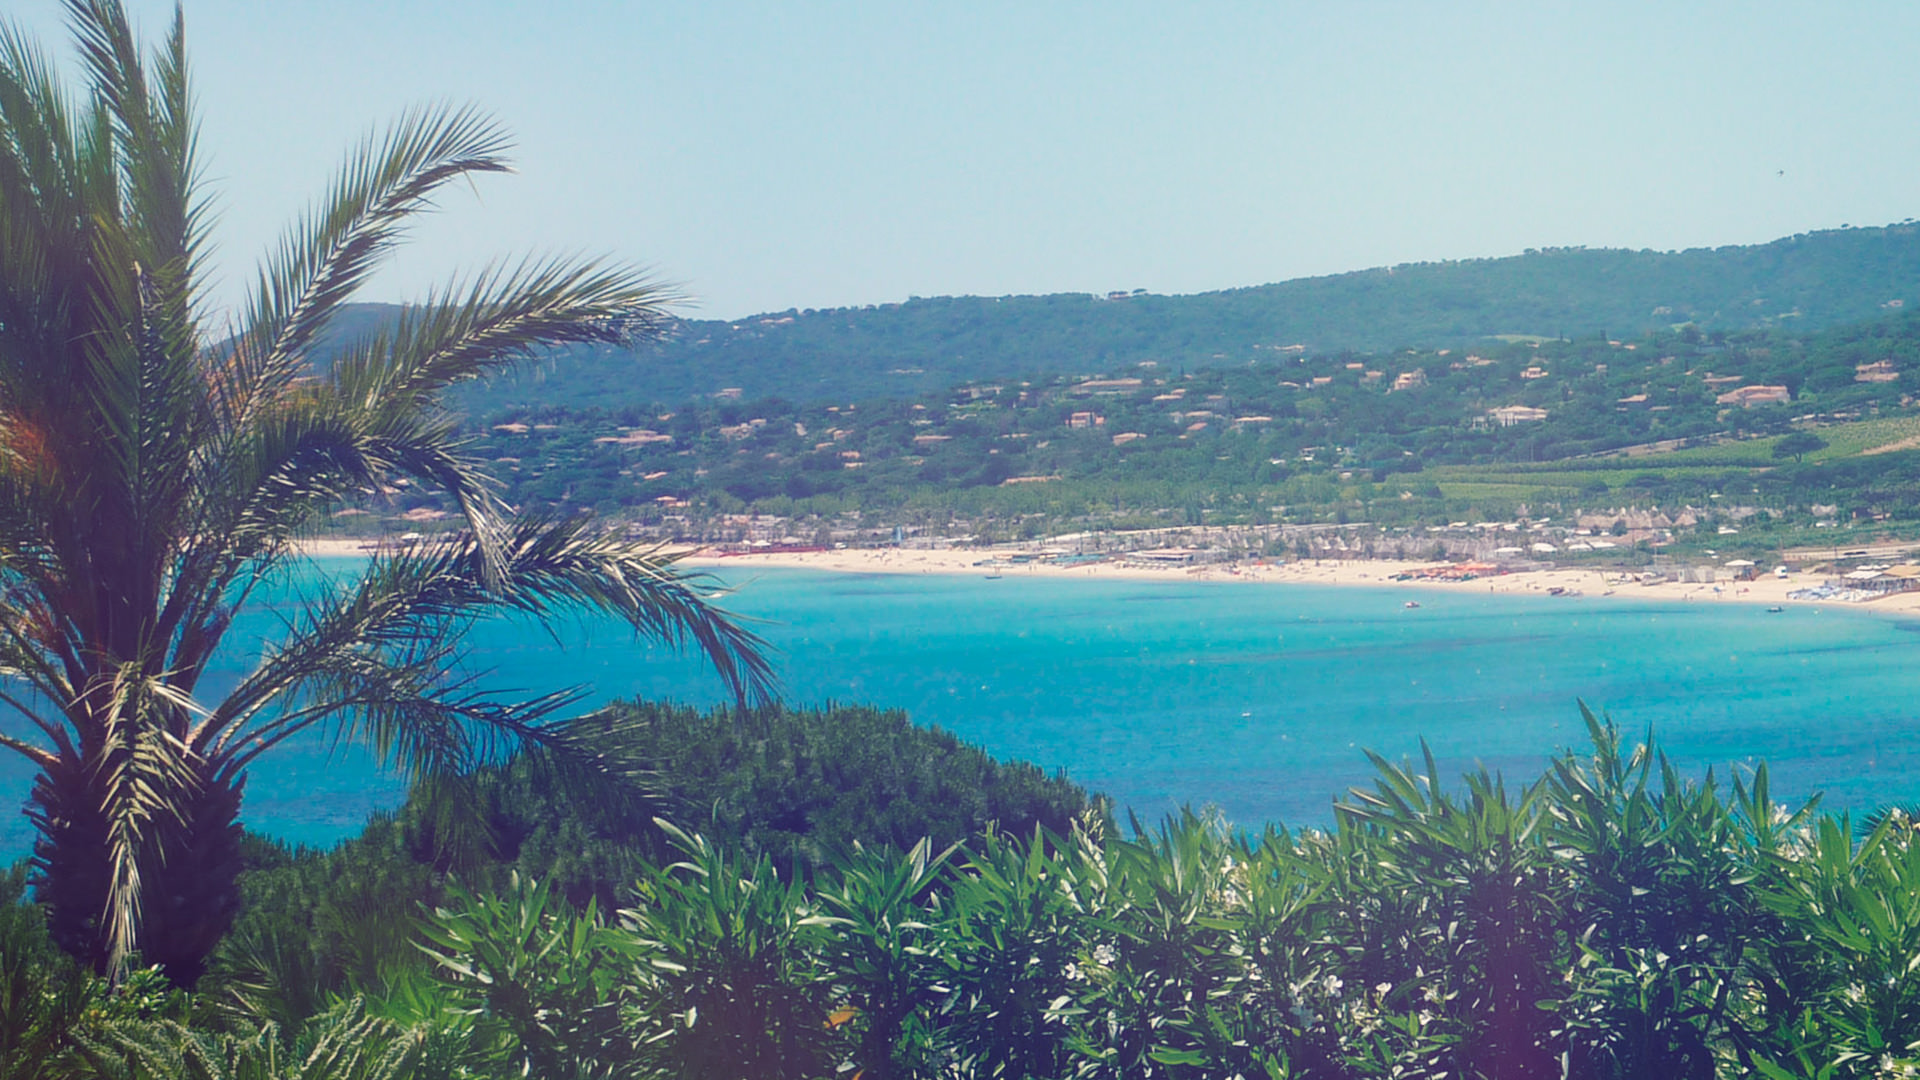 Image from La Provence and Cote d'Azur